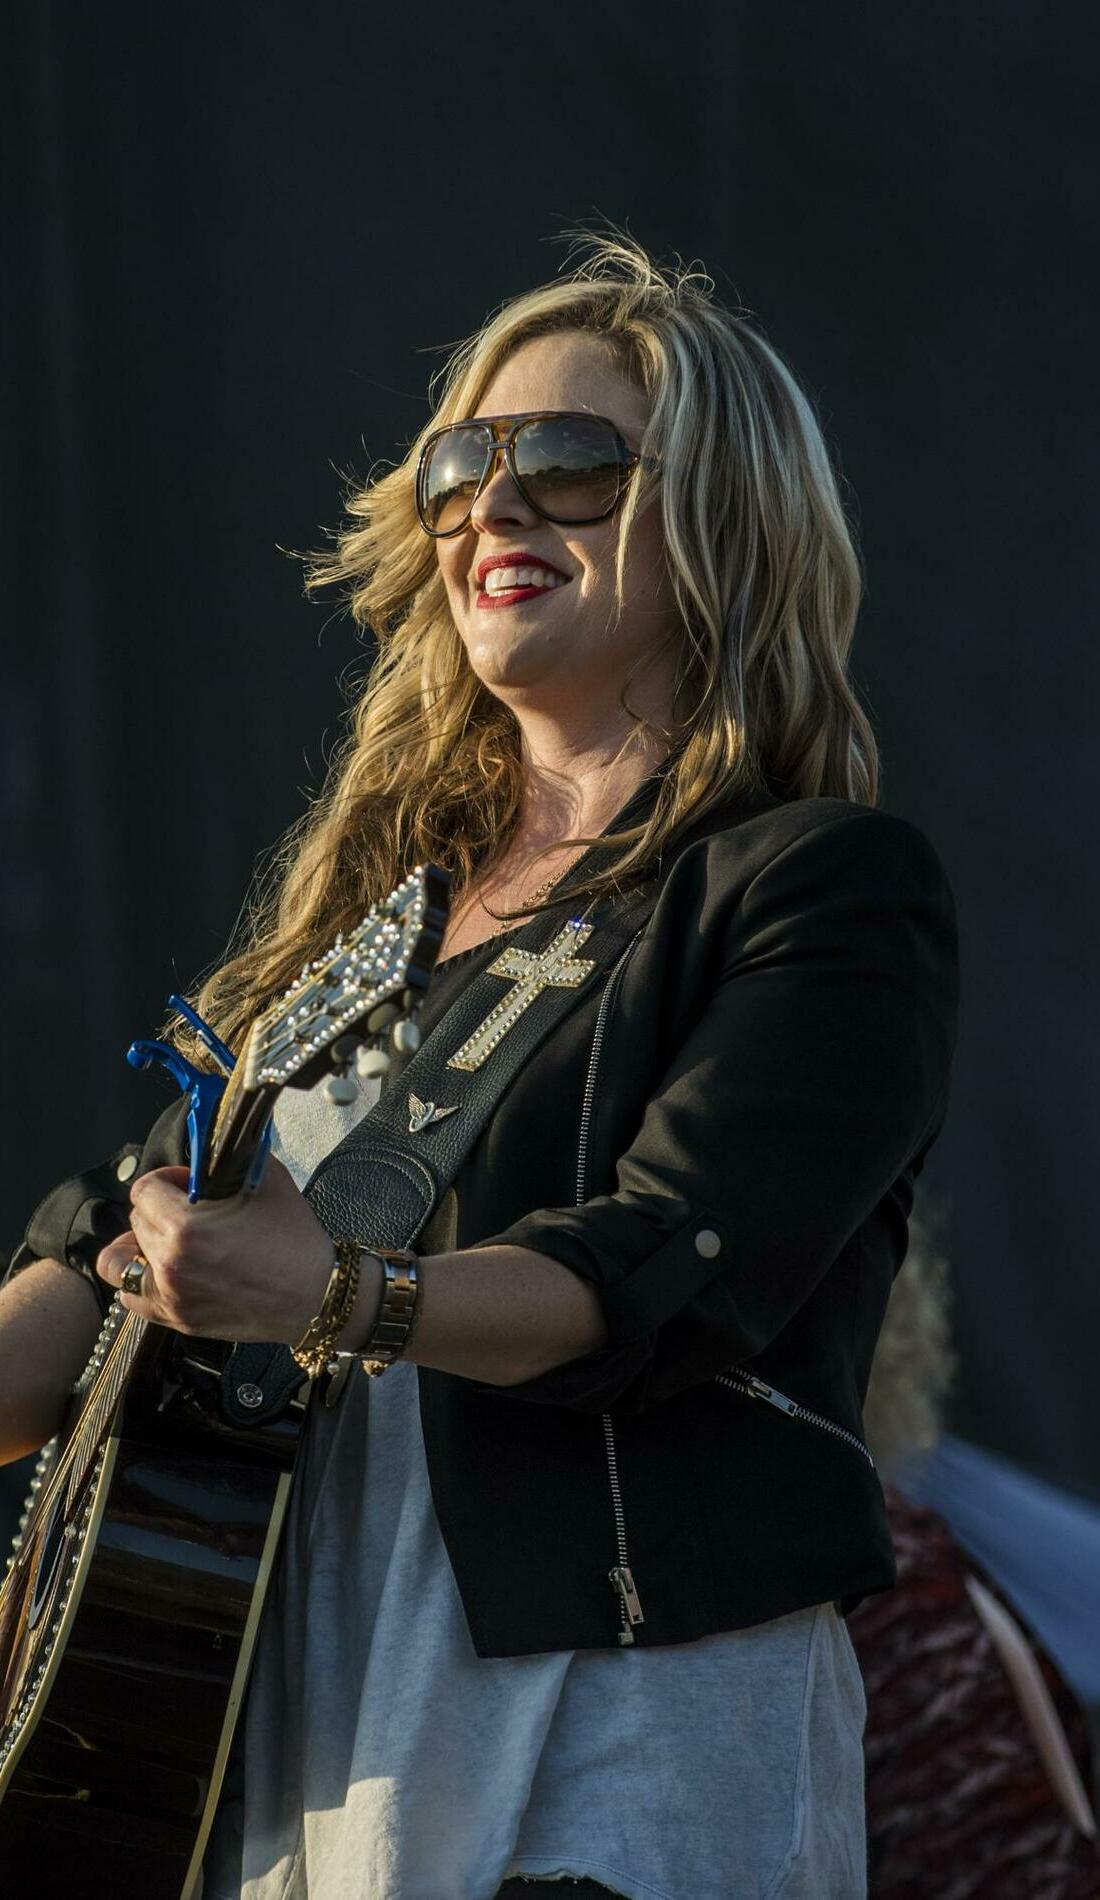 A Sunny Sweeney live event